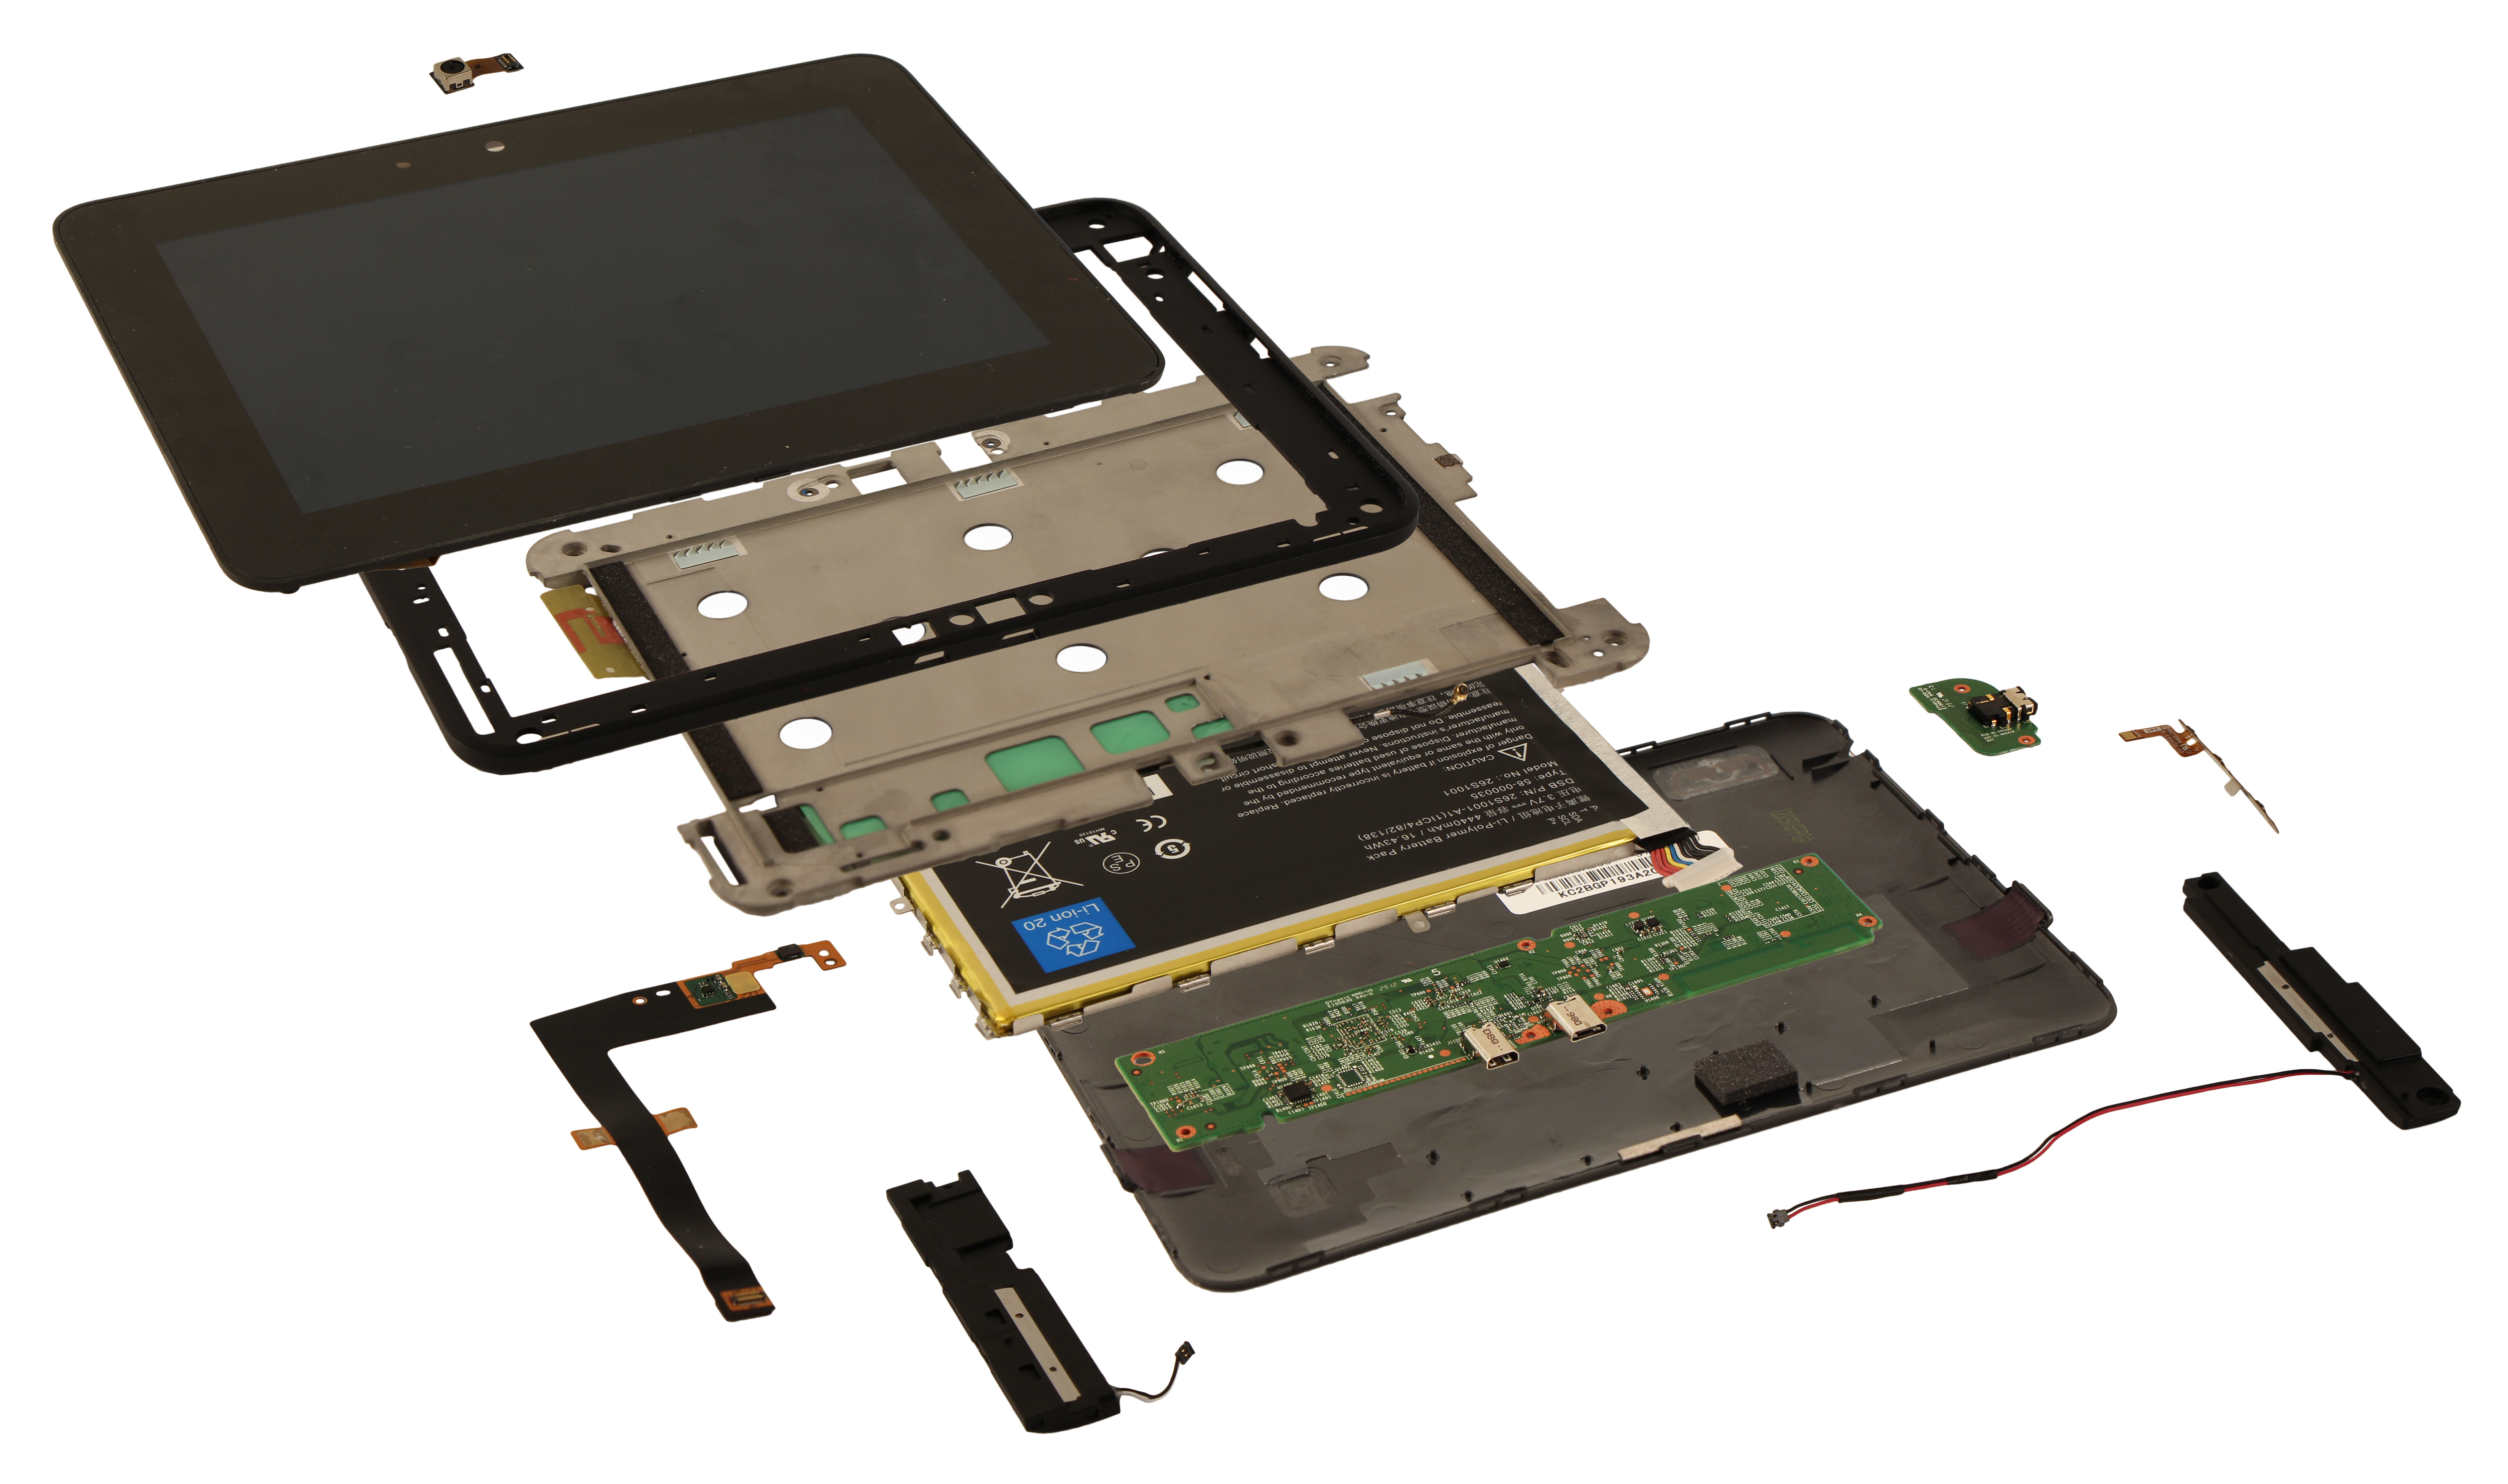 Kindle Fire Hd Exploded View